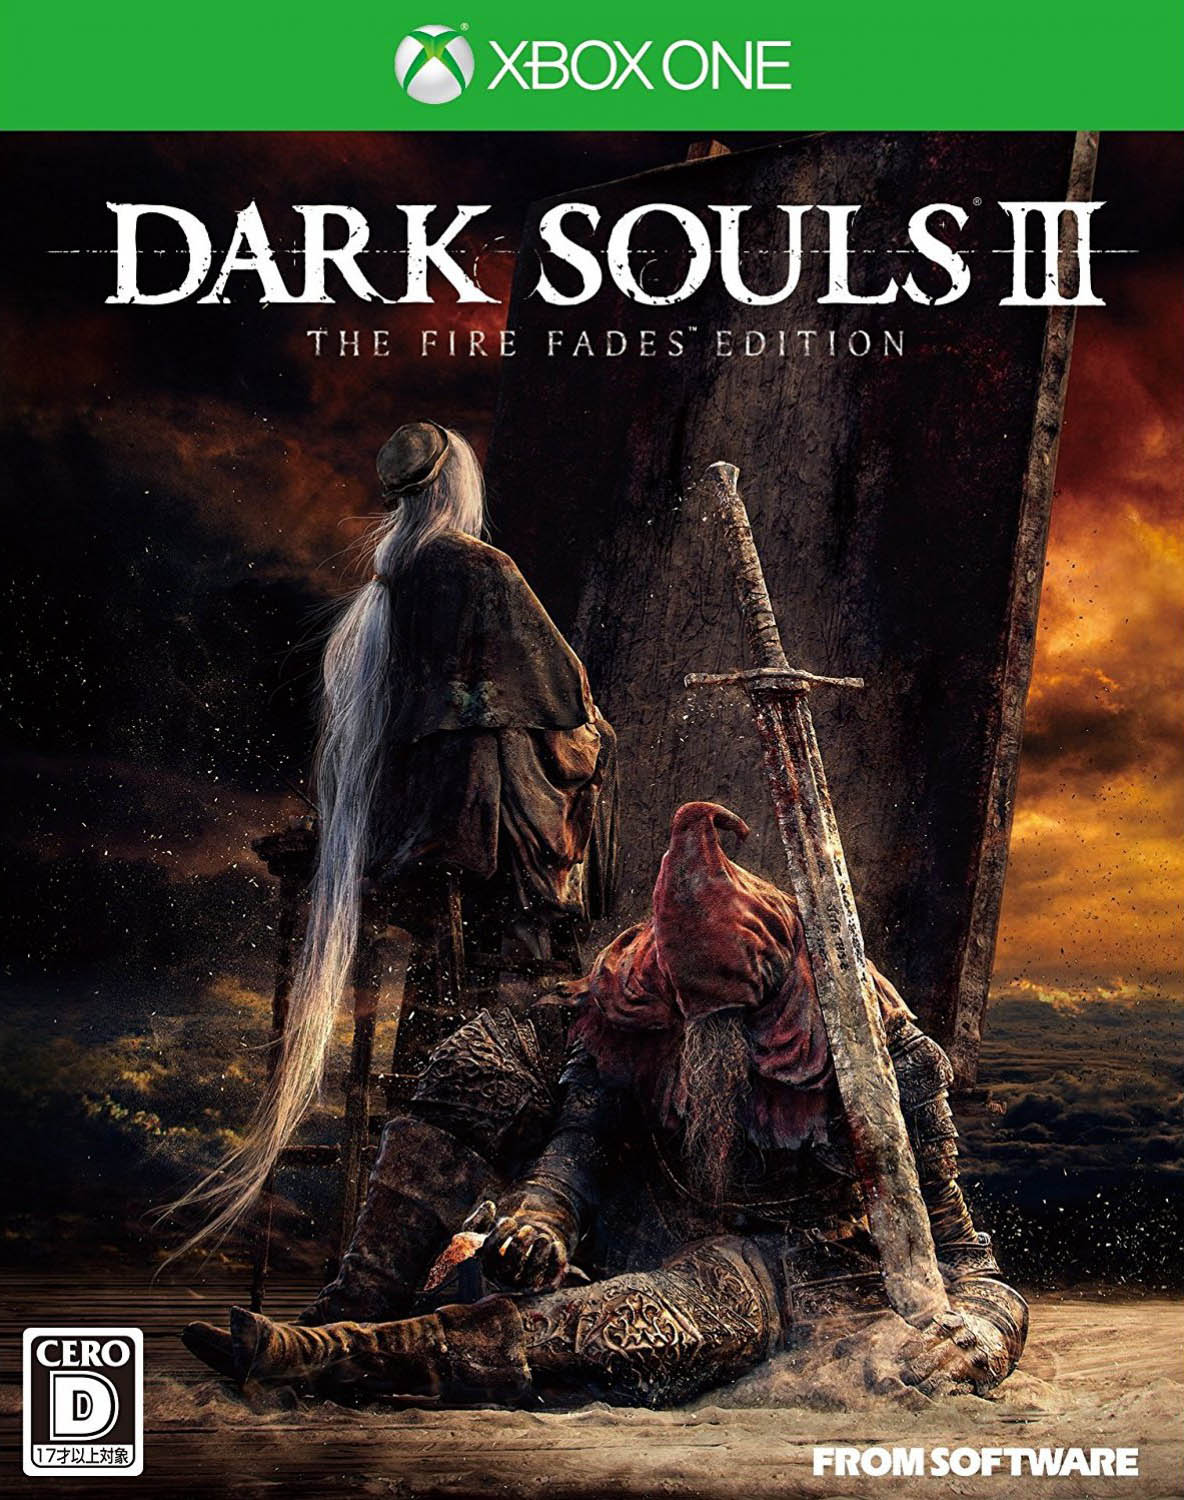 Dark Souls III: The Fire Fades Edition Xbox One Издание в Японии